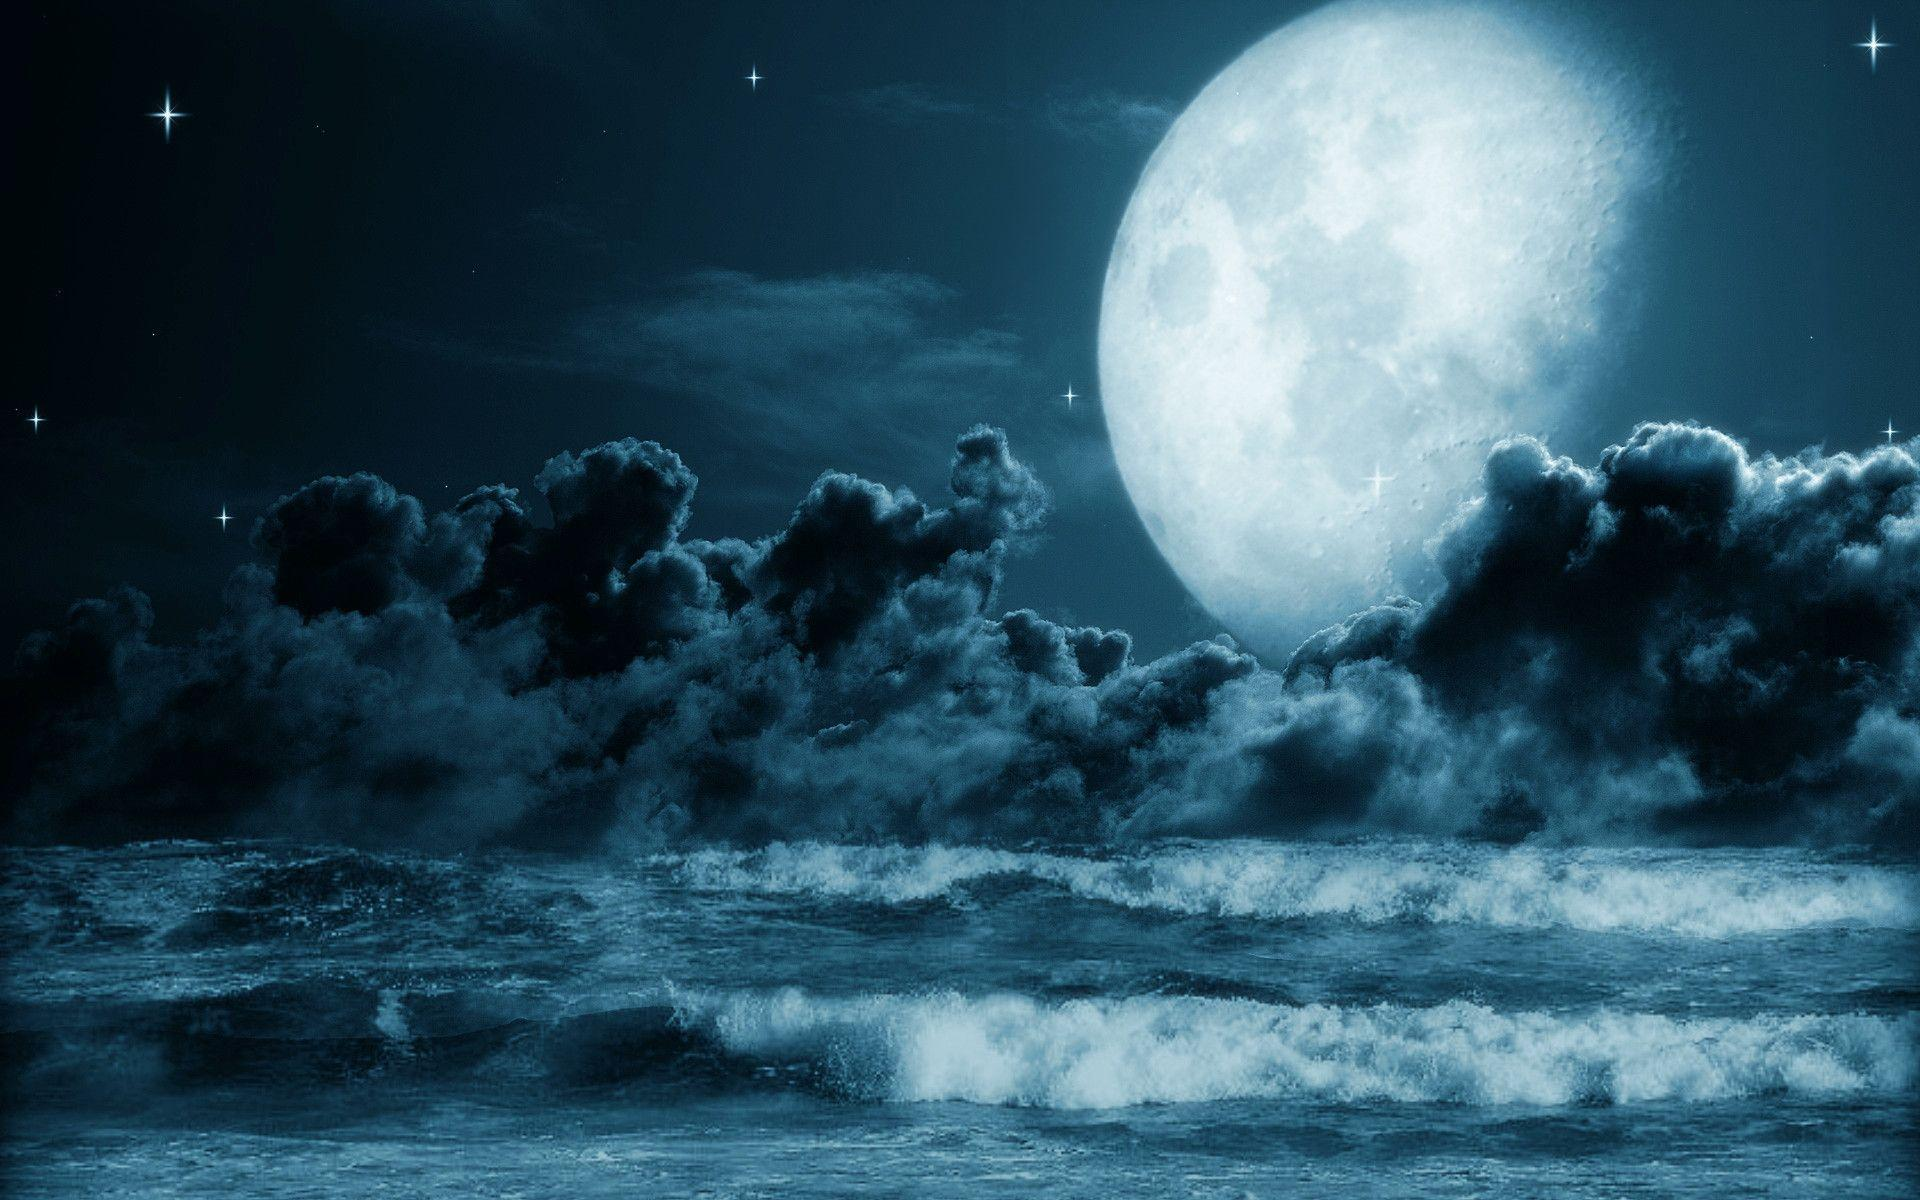 full moon night wallpapers free | vergapipe.com